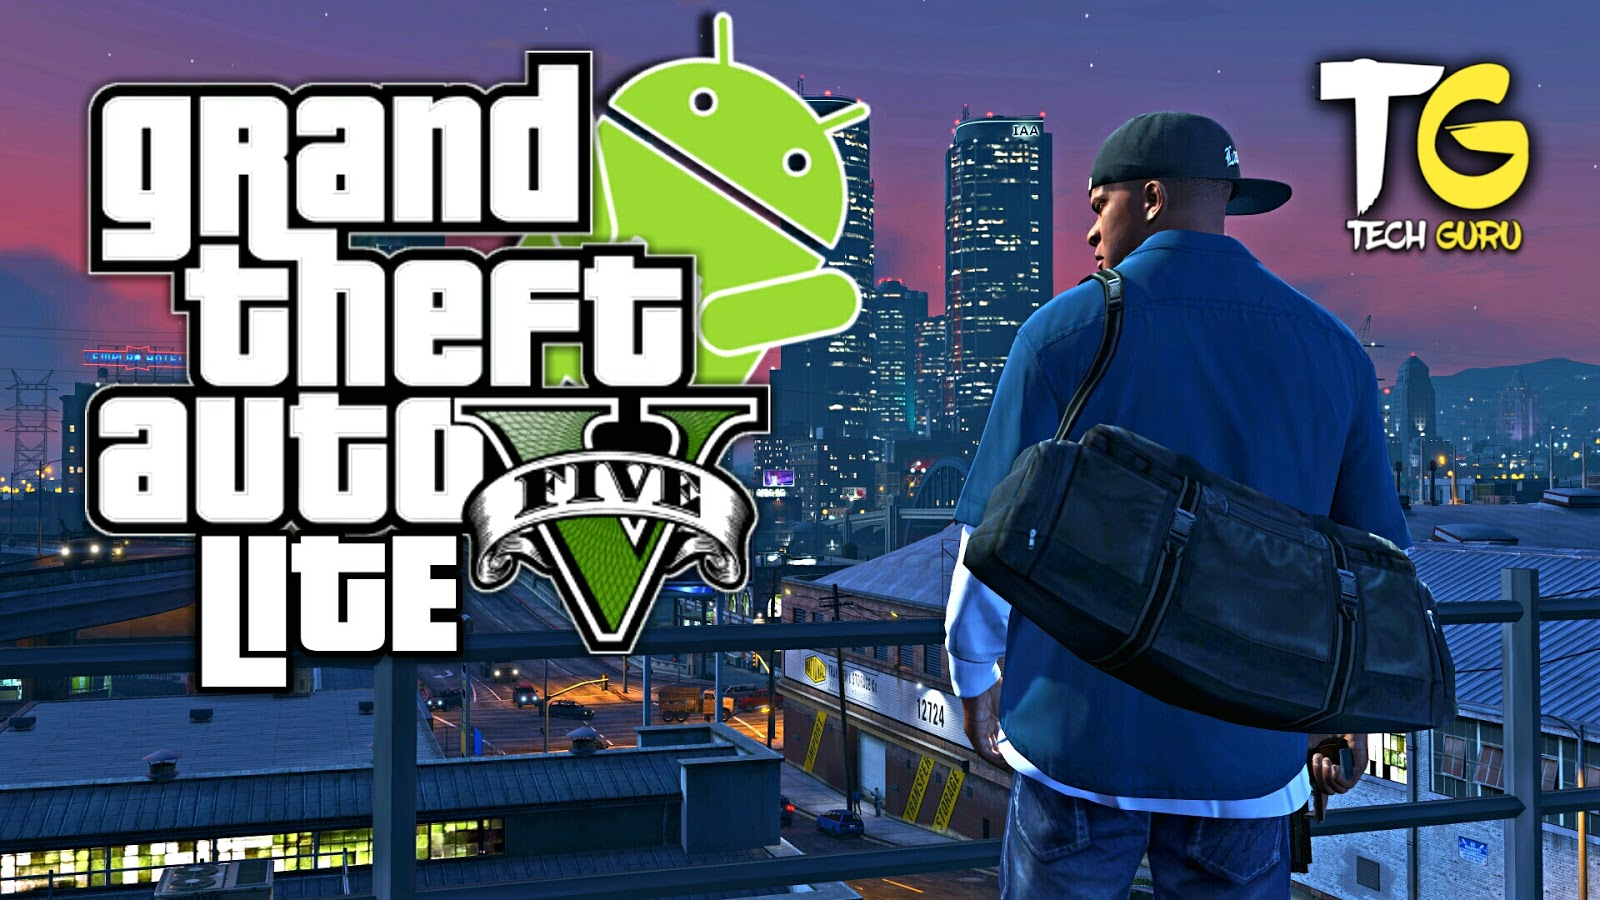 500MB] GTA 5 LITE MOD FOR ANDROID - GamerKing